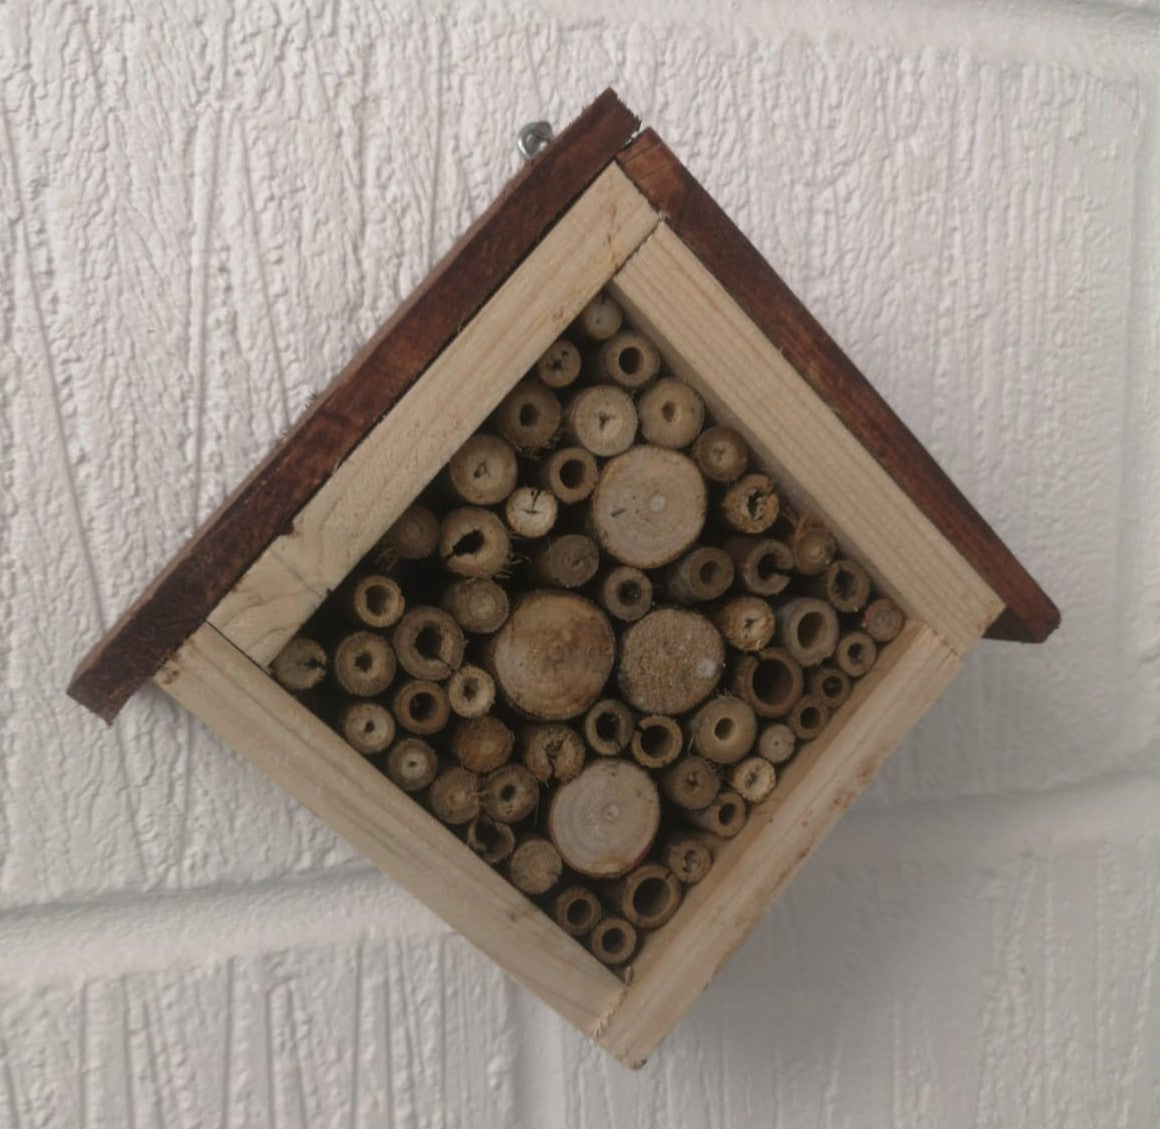 Insect home - A home for bug